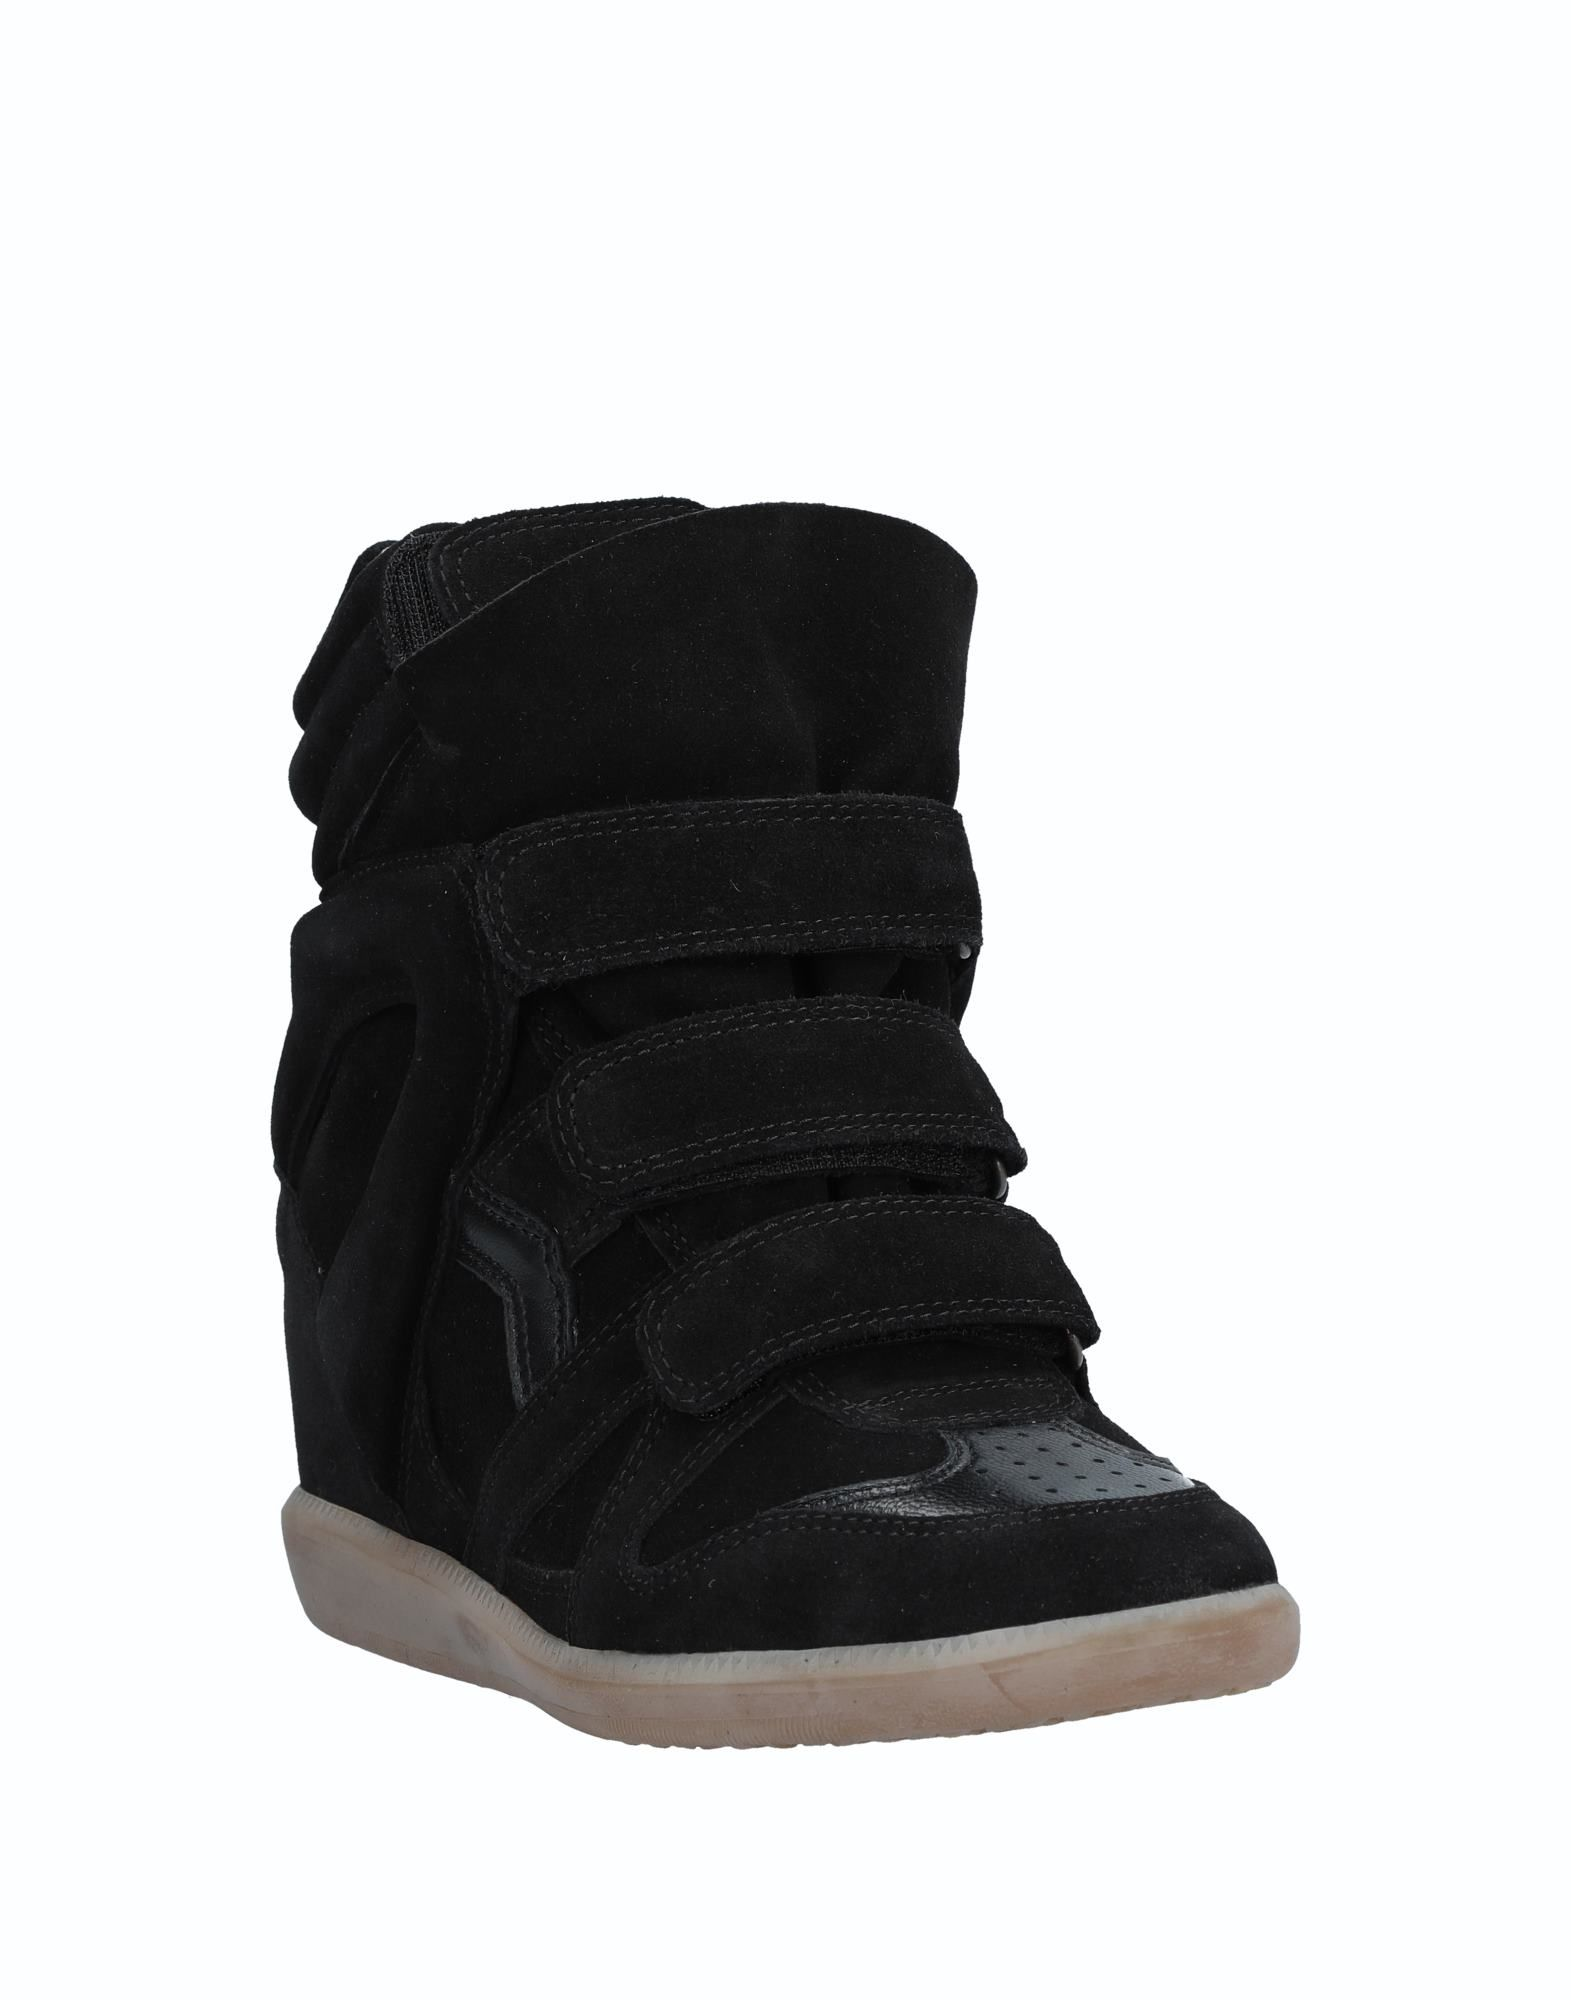 Sneakers - Isabel Marant étoile Donna - Sneakers 11538125KW 89c90b